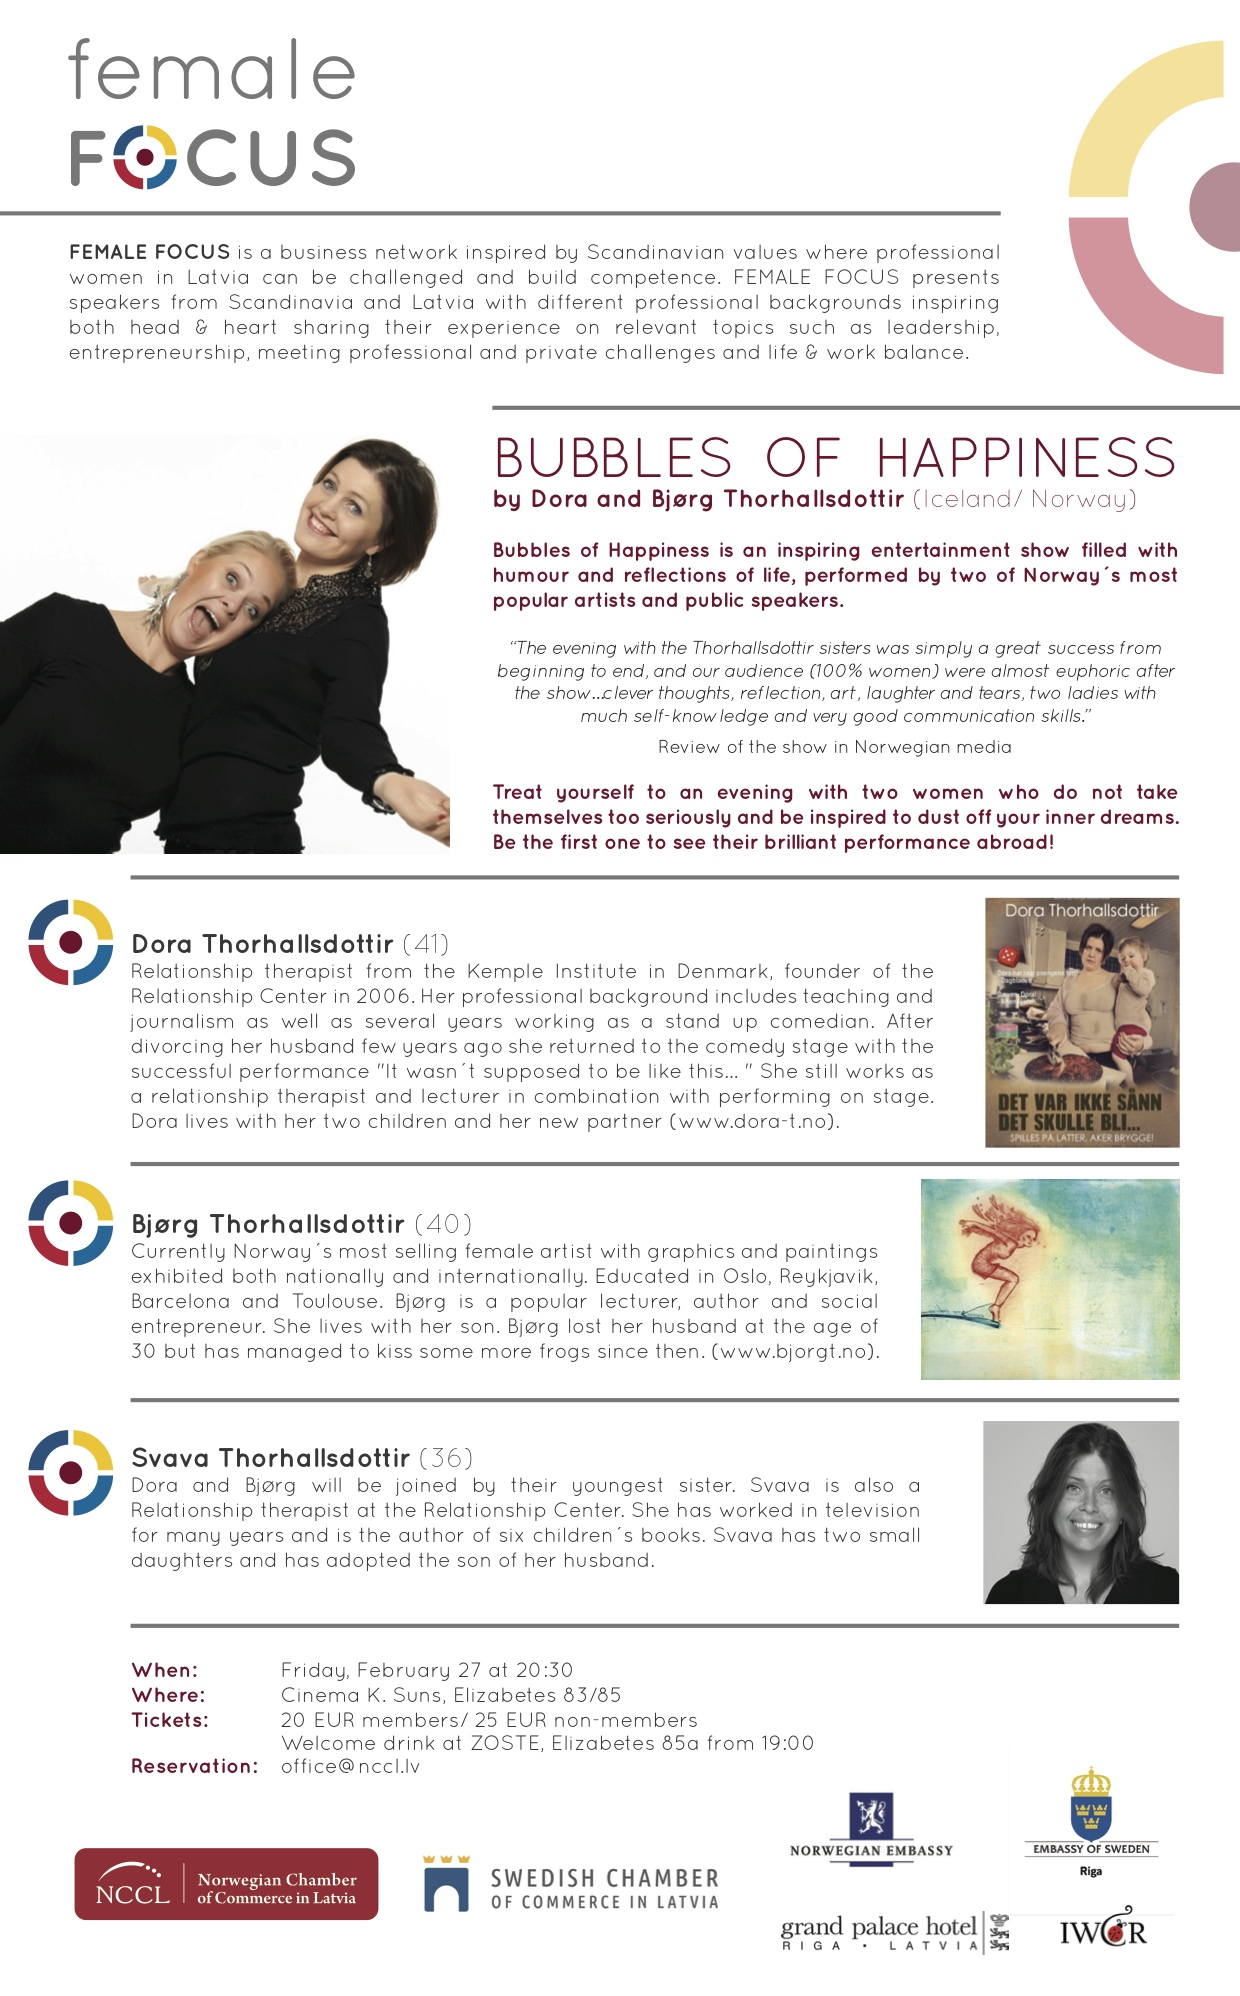 FF Feb27_Bubbles of Happiness